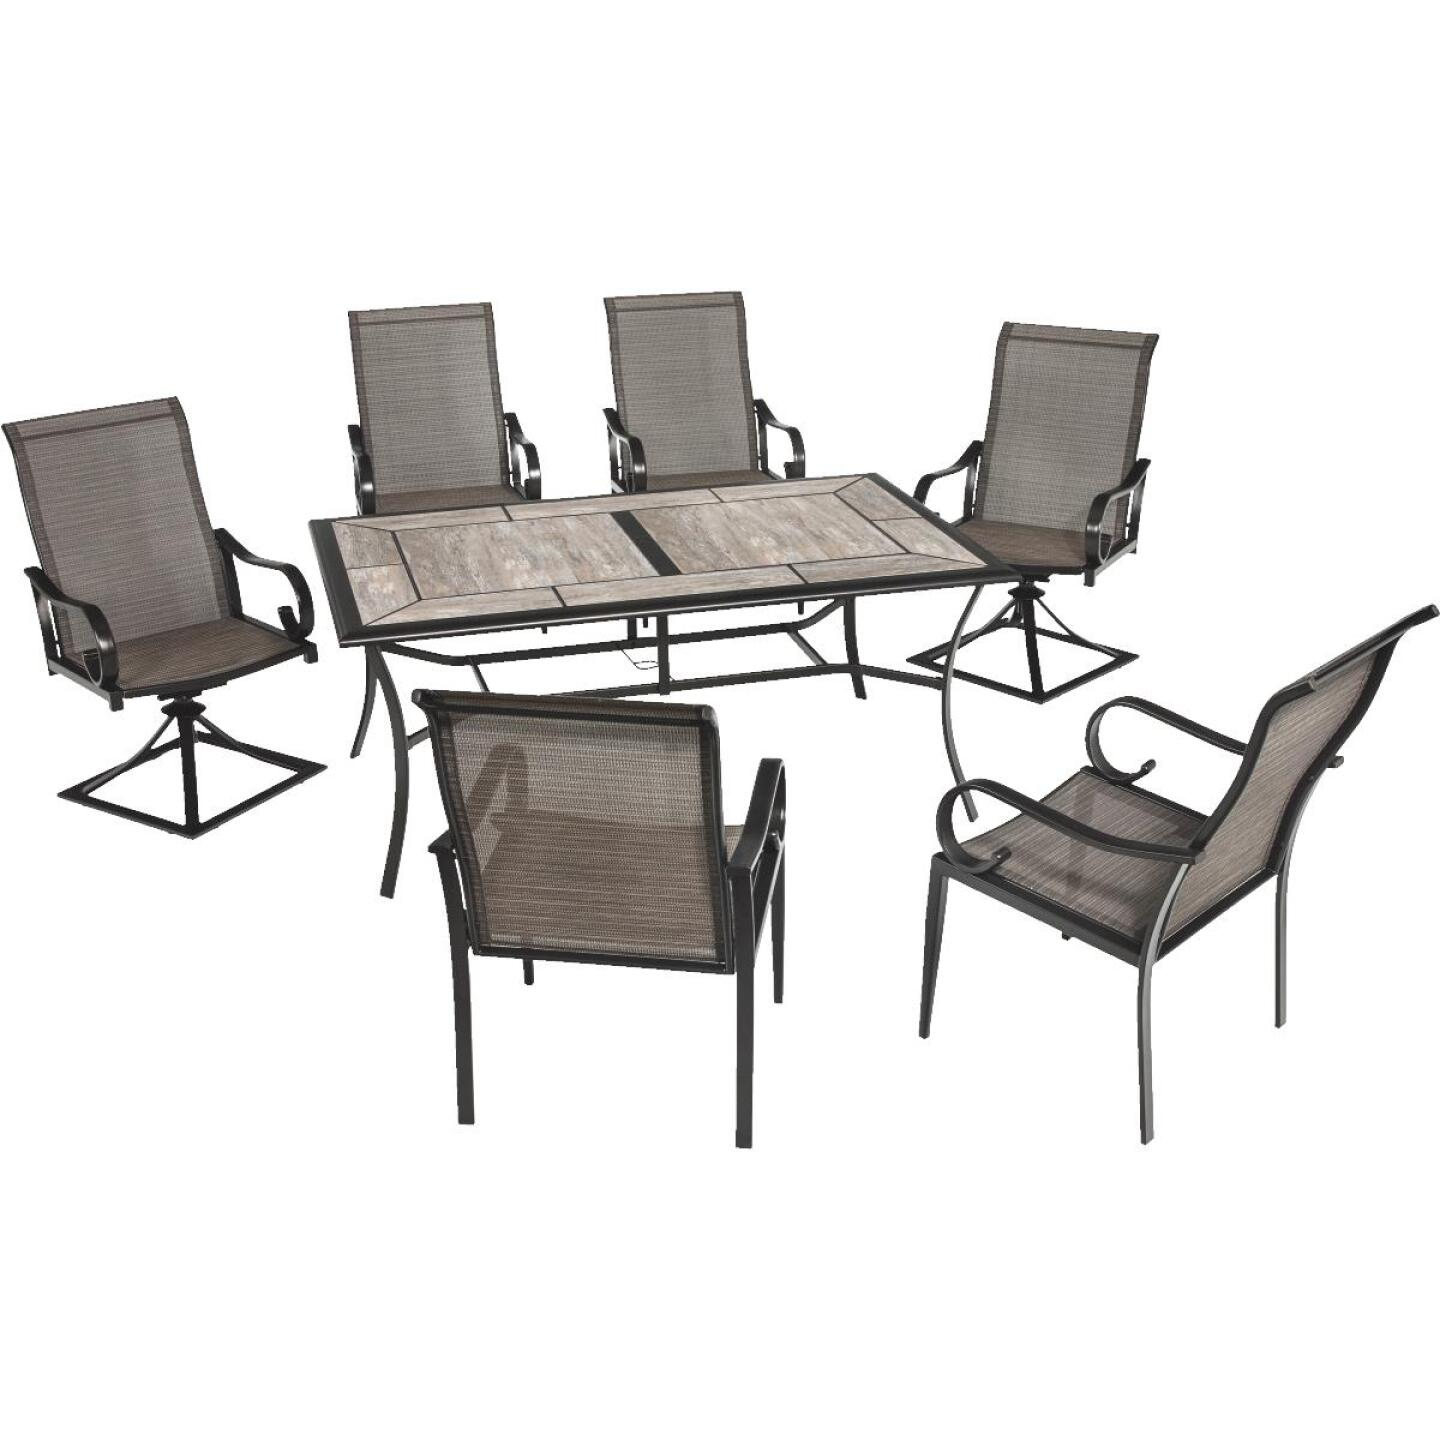 Outdoor Expressions Berkshire 7-Piece Dining Set Image 229